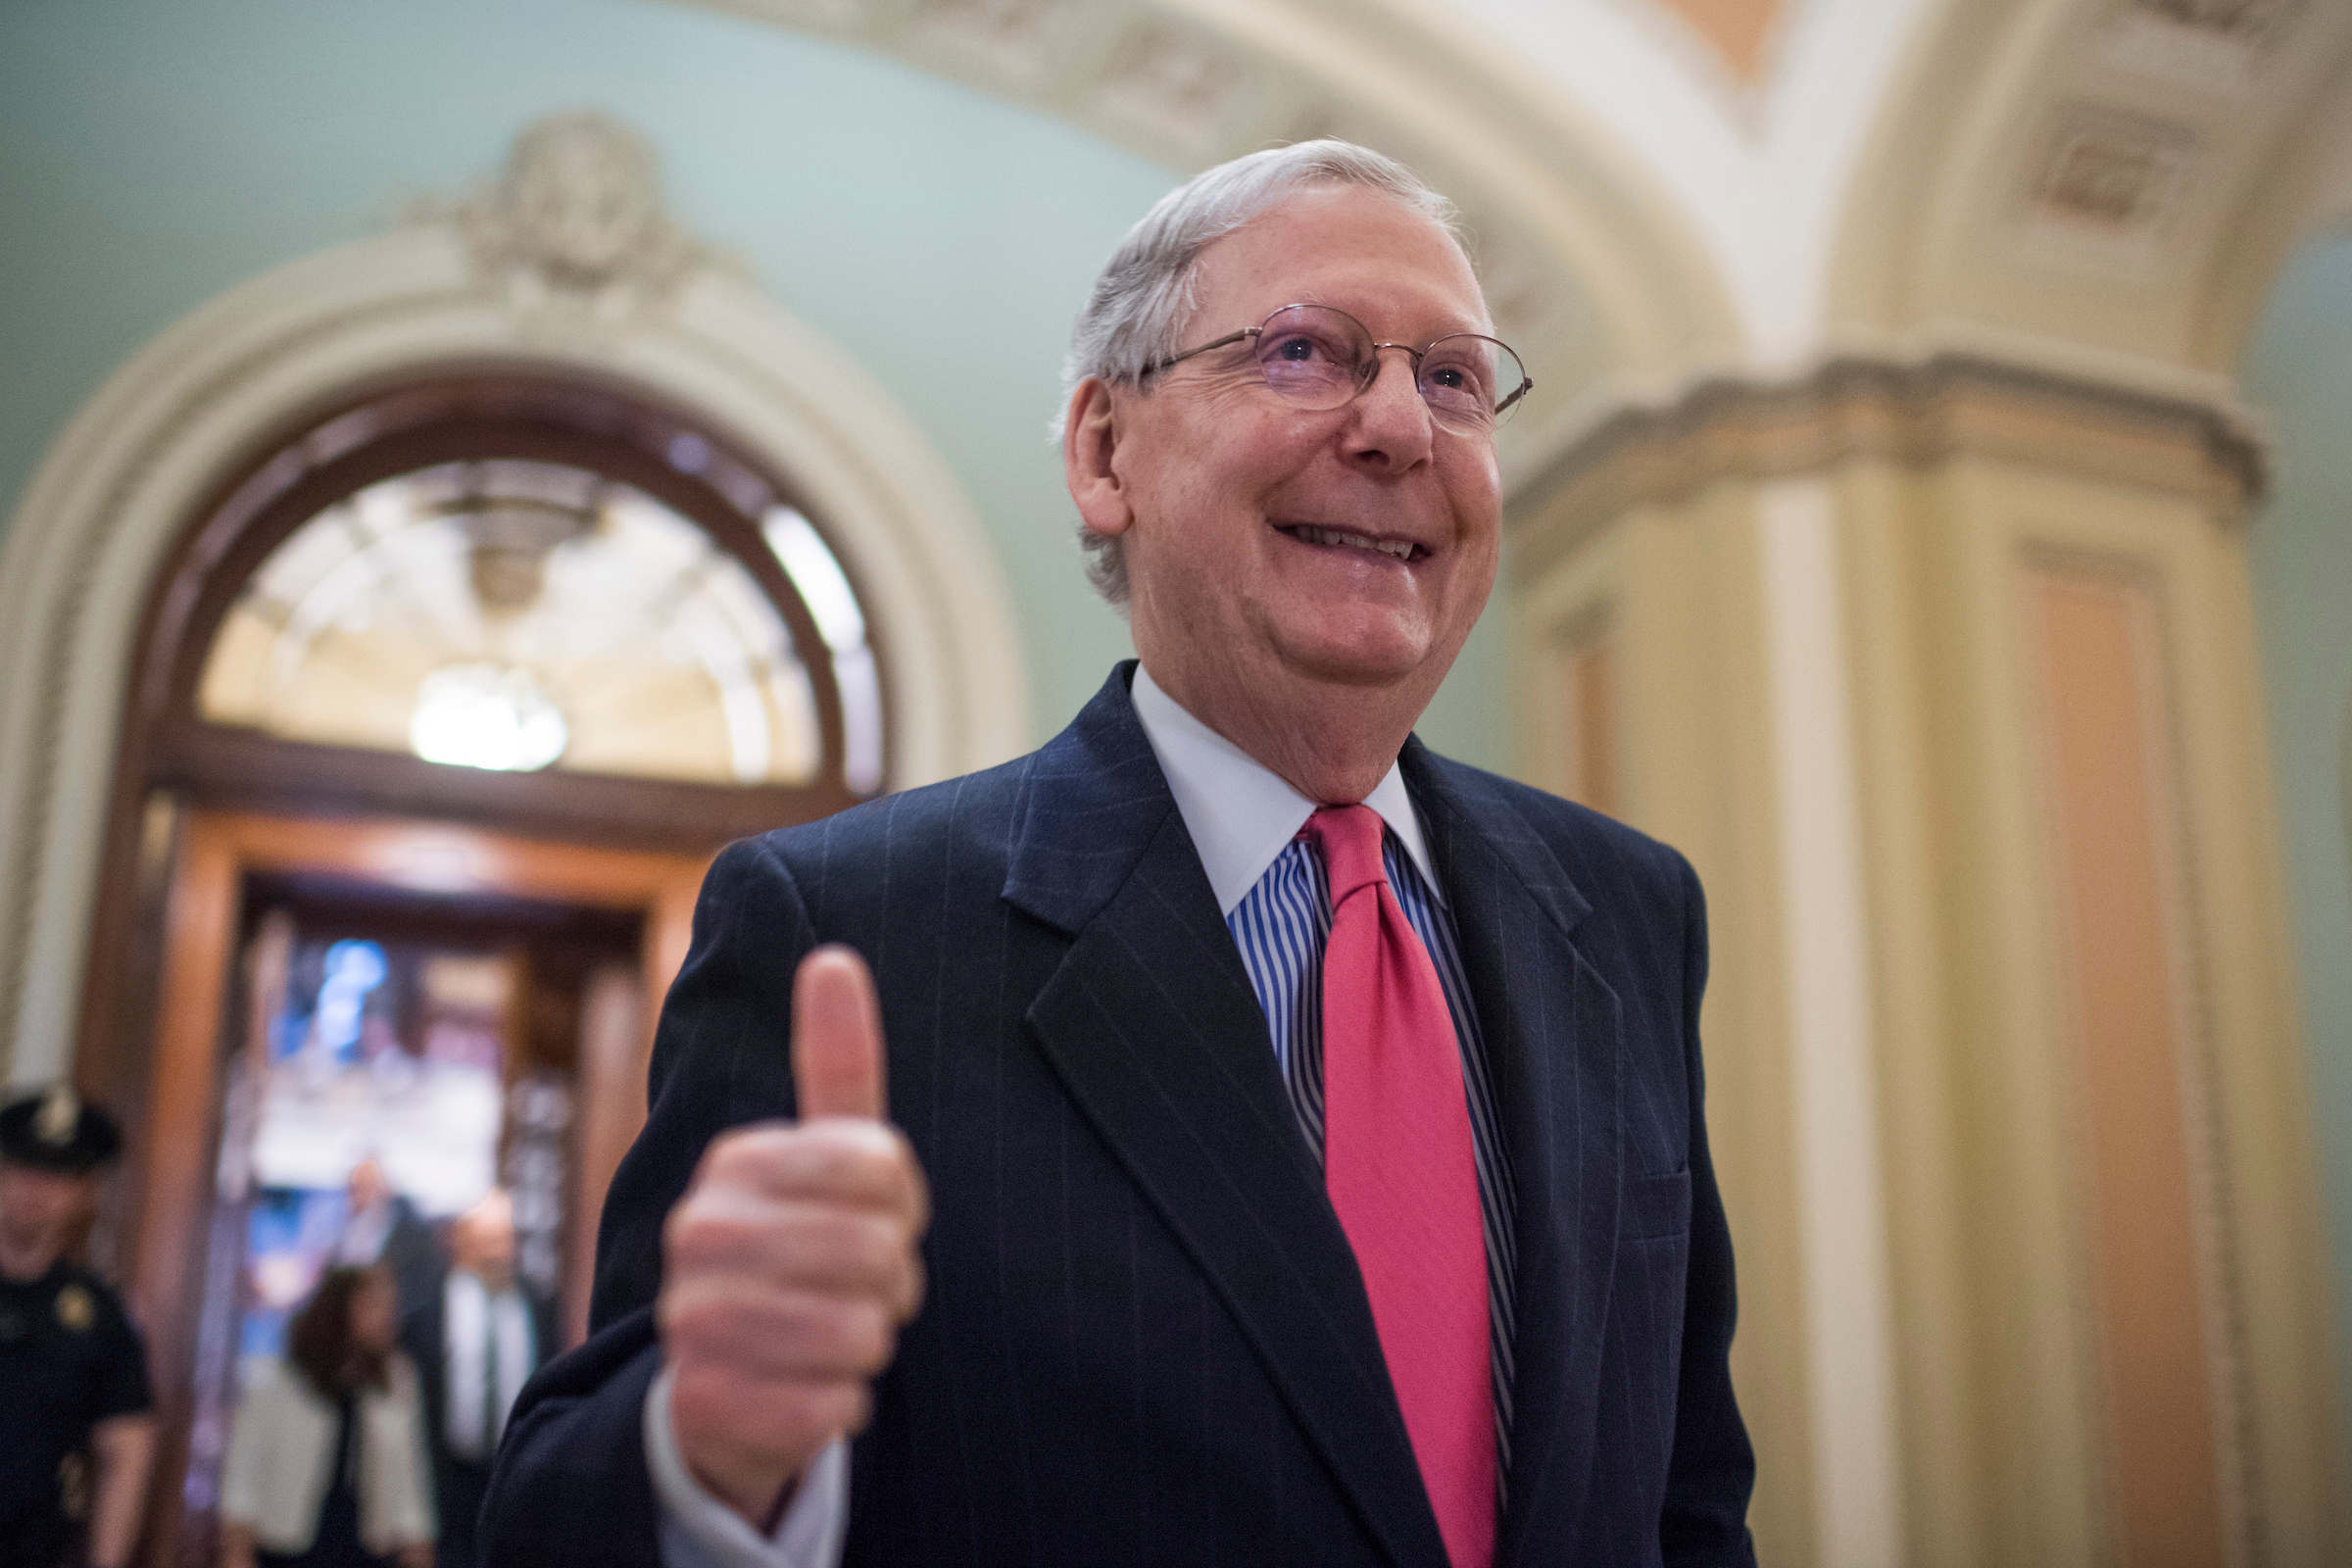 "APRIL 6: Senate Majority Leader Mitch McConnell, R-Ky., gives a thumbs up after the Senate invoked the ""nuclear option"" which will allow for a majority vote to confirm a Supreme Court justice nominee. The vote for nominee Neil Gorsuch happened Friday, filling the long-open seat for the high court. (Tom Williams/CQ Roll Call)"